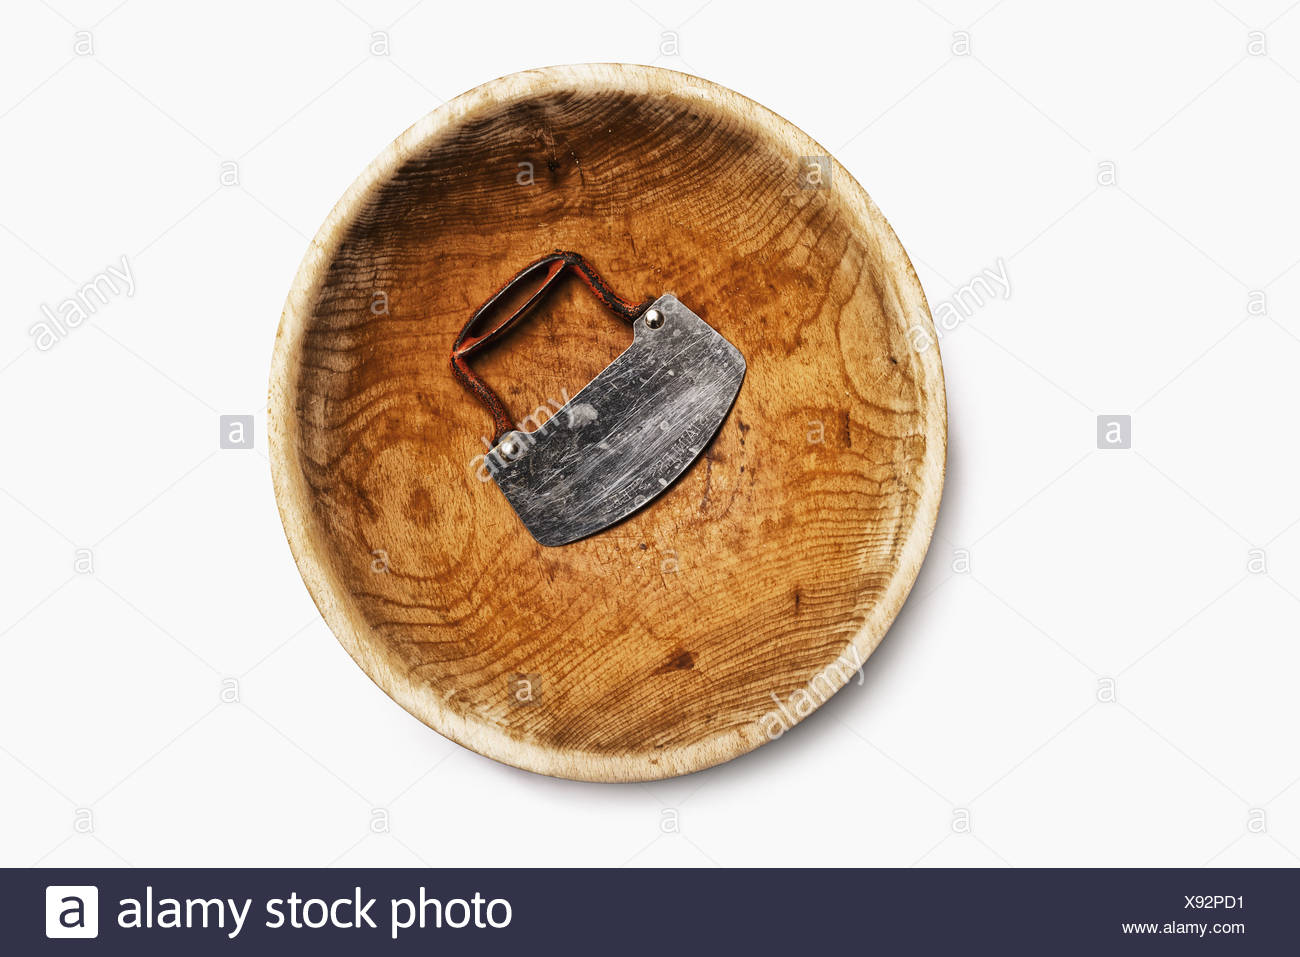 A well worn wooden chopping bowl, with a steel blade and handle. - Stock Image